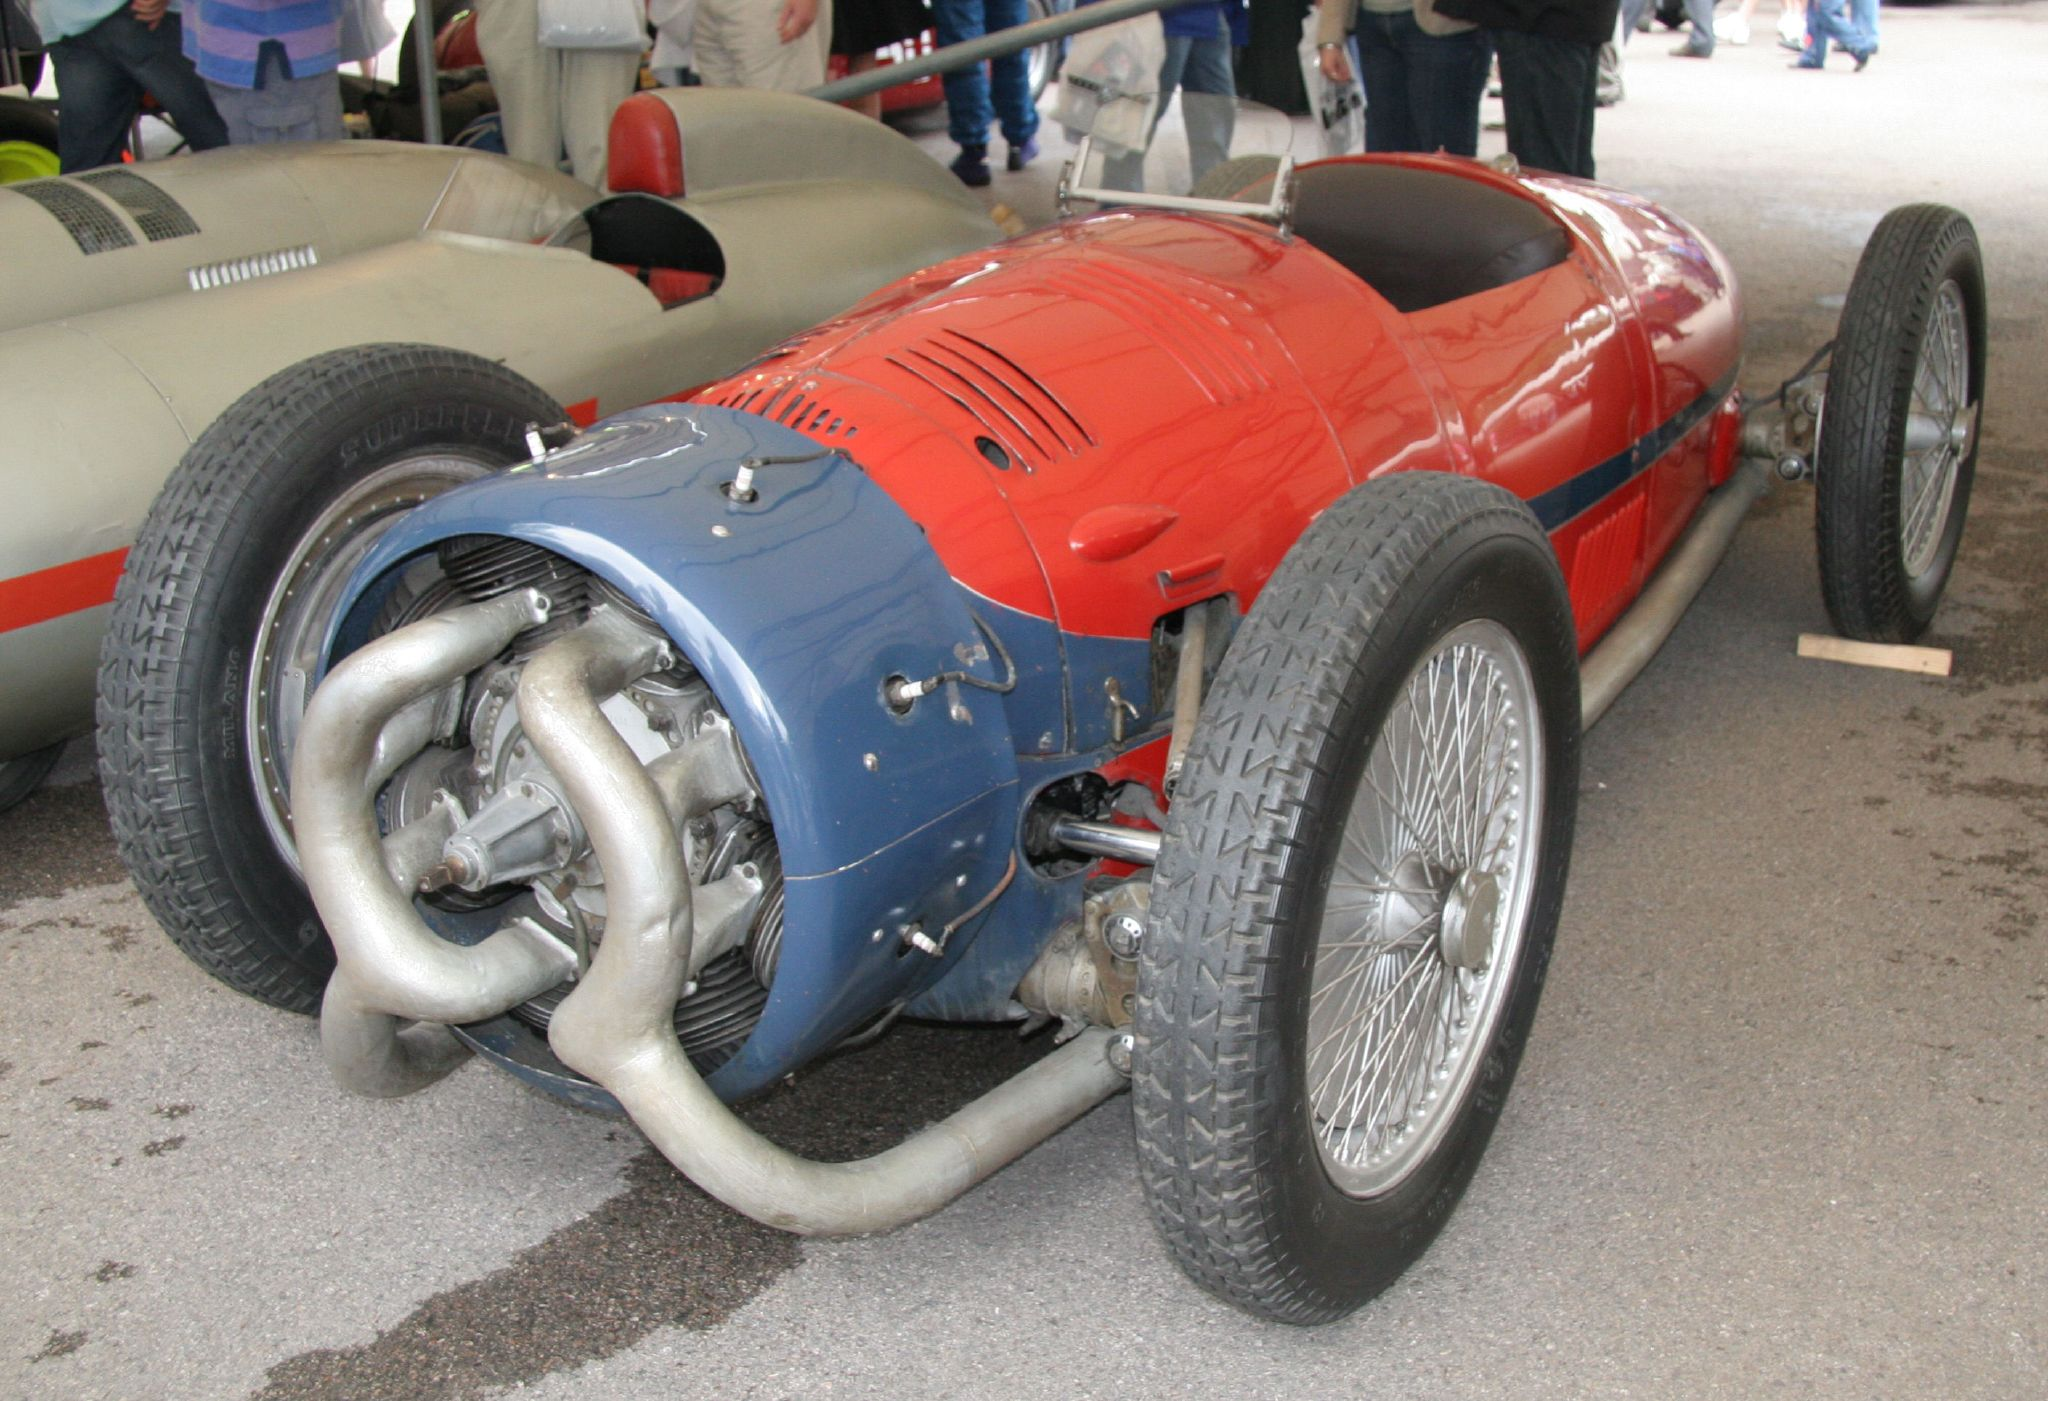 http://upload.wikimedia.org/wikipedia/commons/3/31/Monaco-Trossi1935.jpg